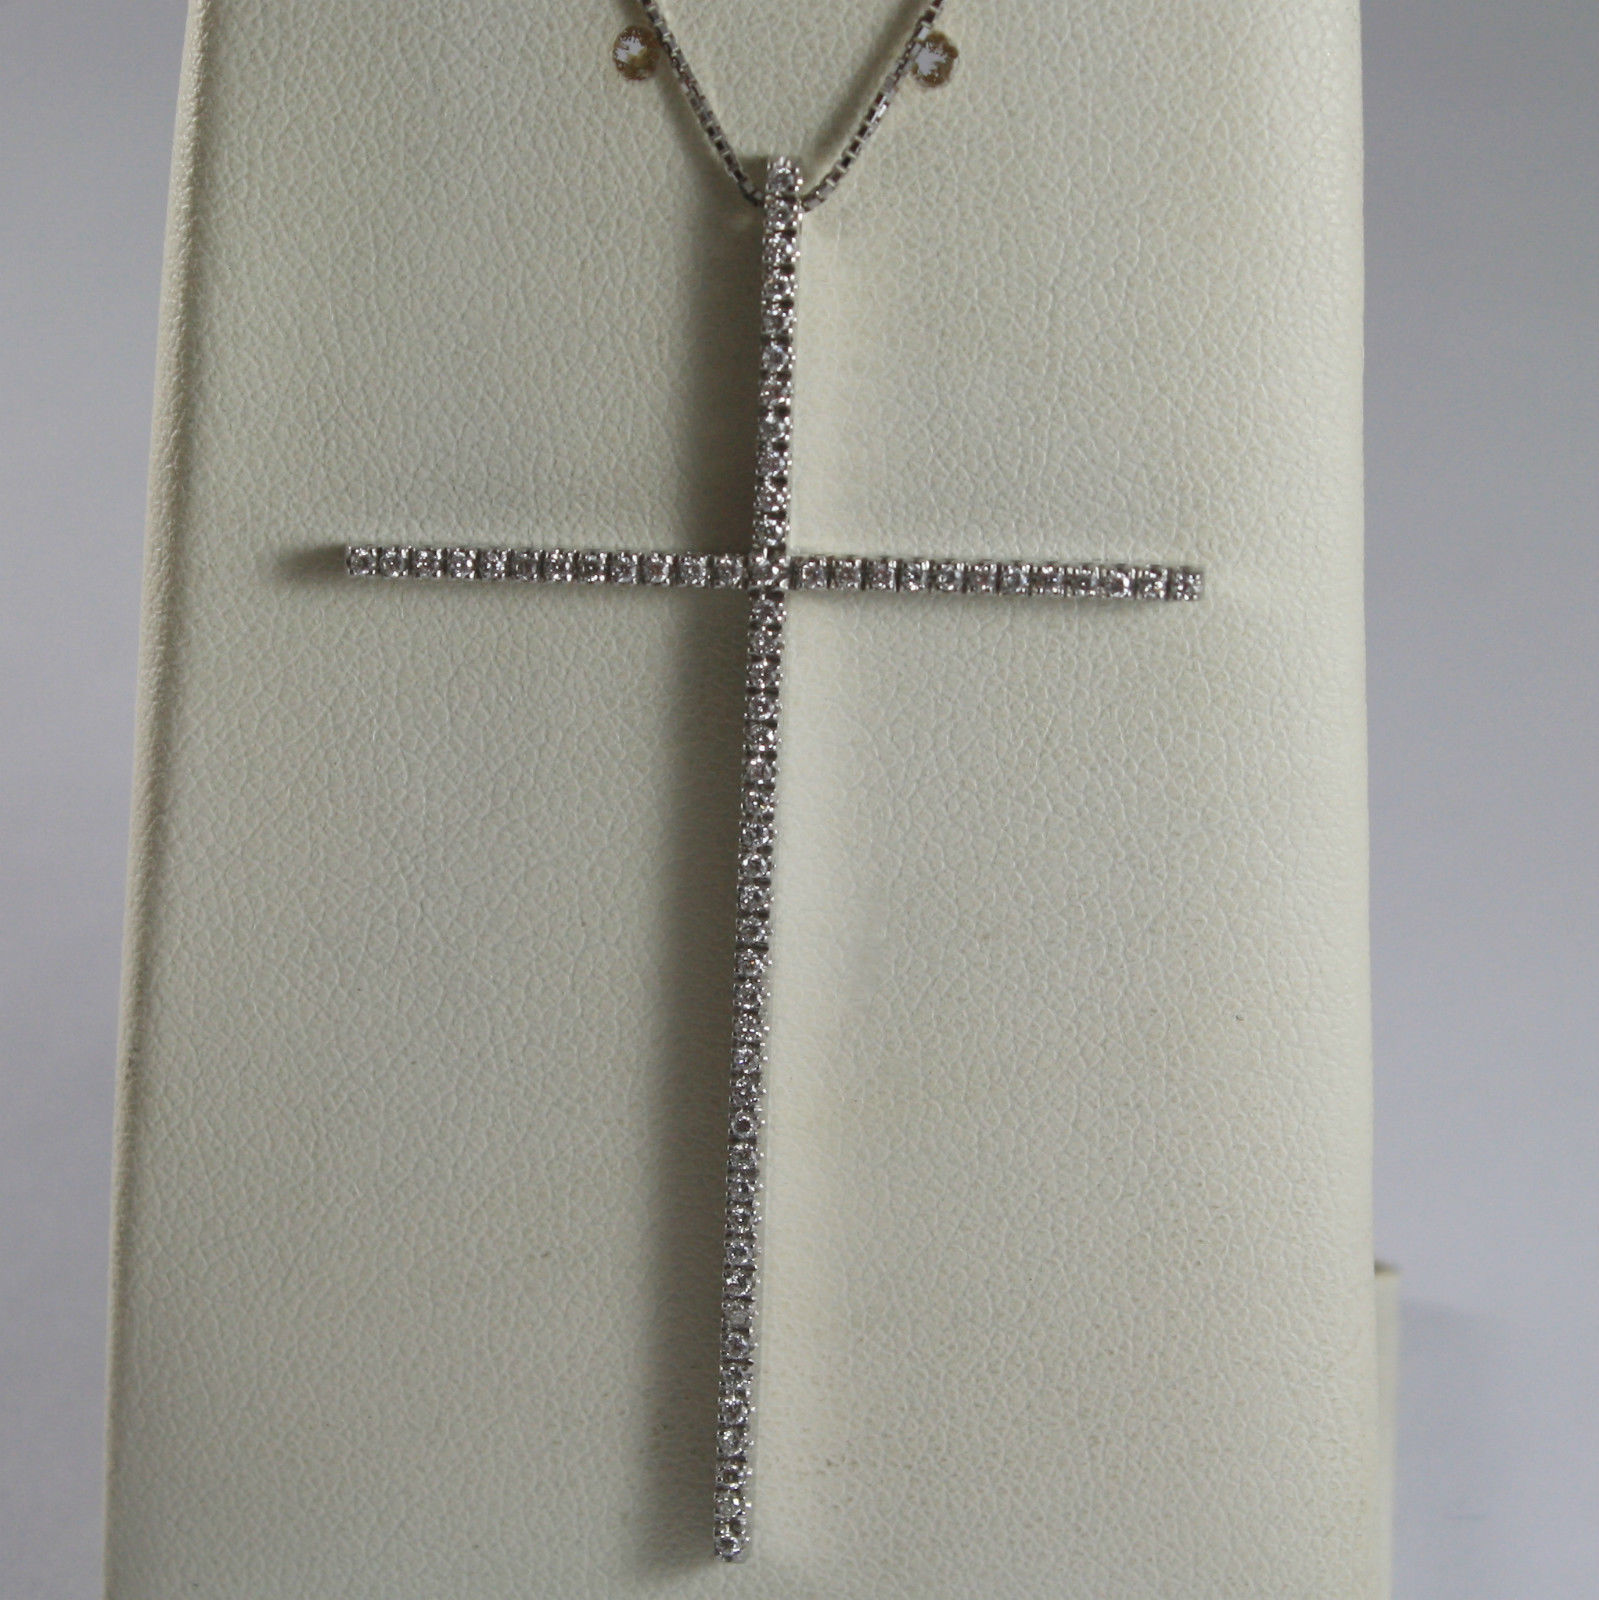 SOLID 18K WHITE GOLD NECKLACE WITH BIG CROSS, DIAMONDS, DIAMOND MADE IN ITALY